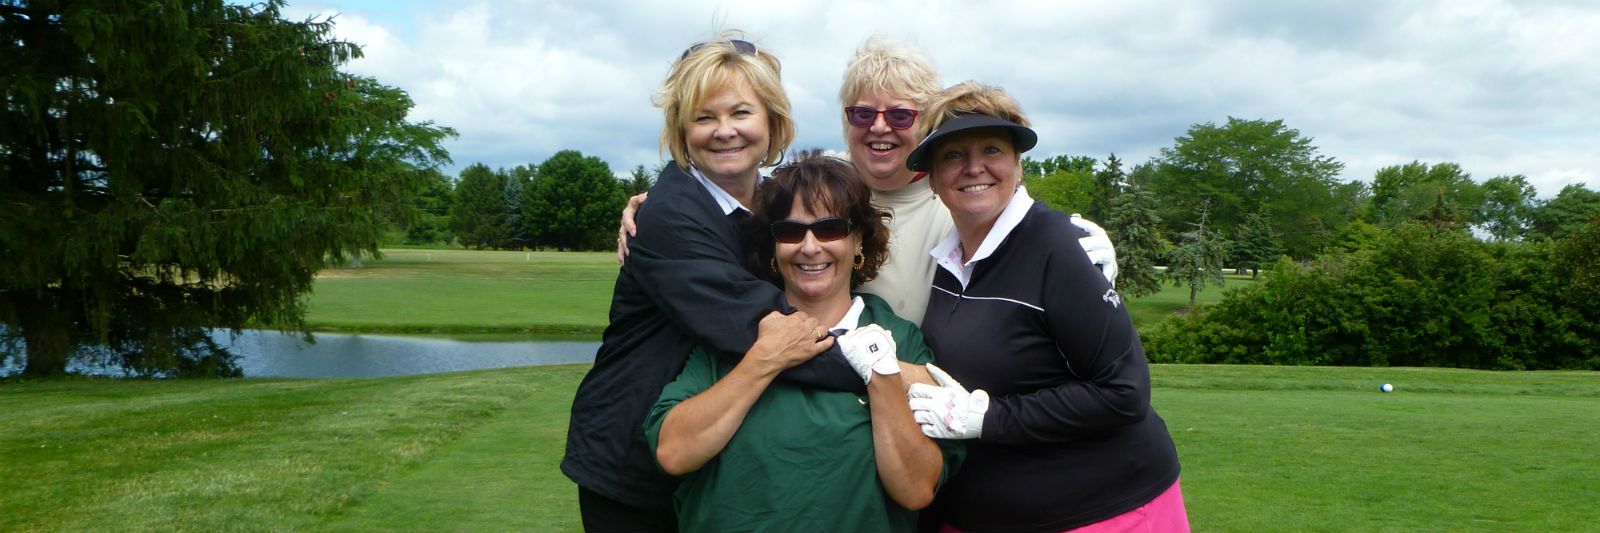 2014-Perrysburg-Chamber-Golf-Outing-First-Federal.jpg